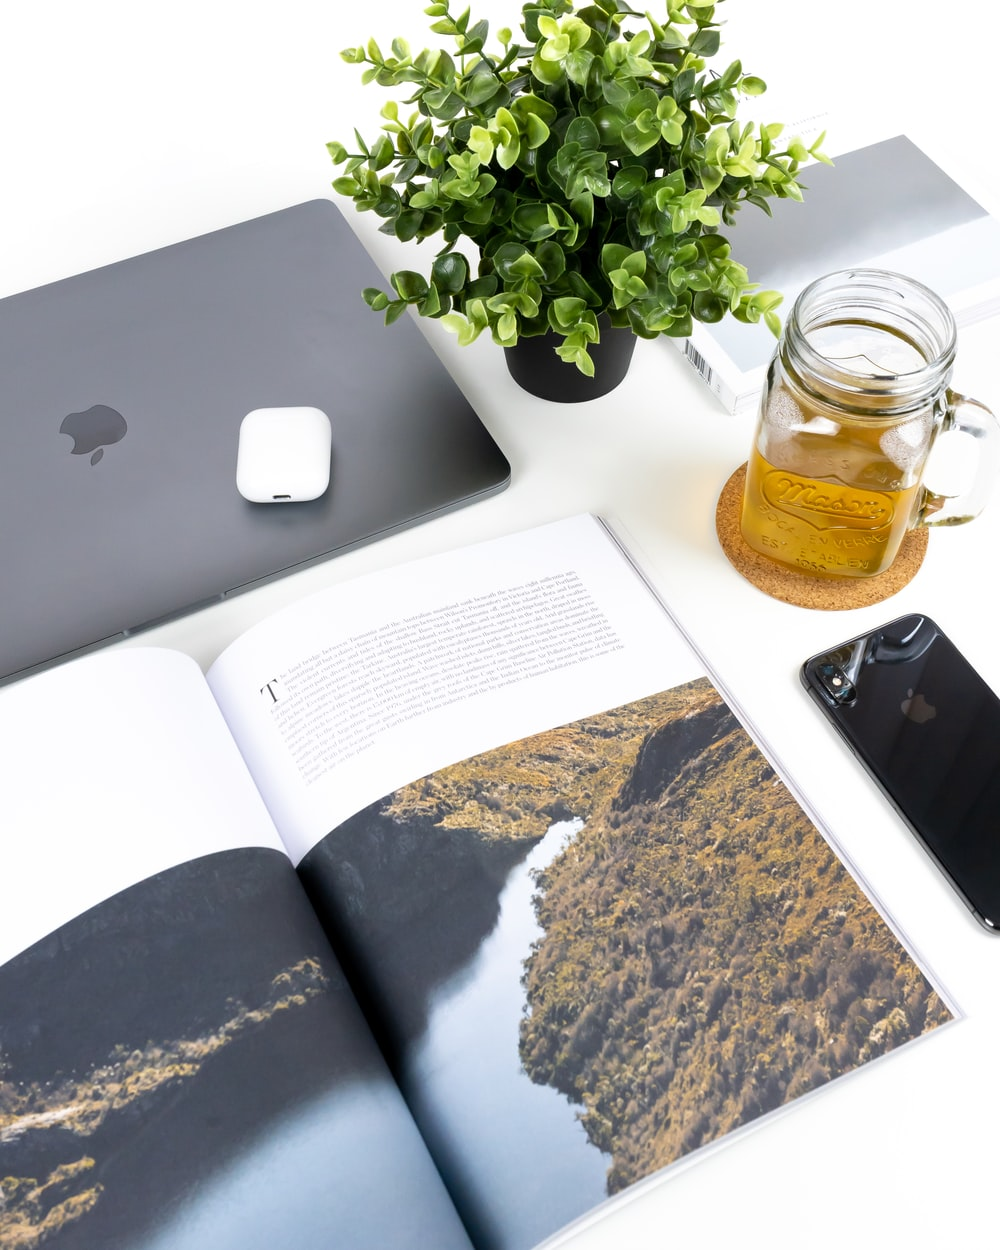 half-empty clear glass jar beside green-leafed plant, MacBook, and space gray iPhone X